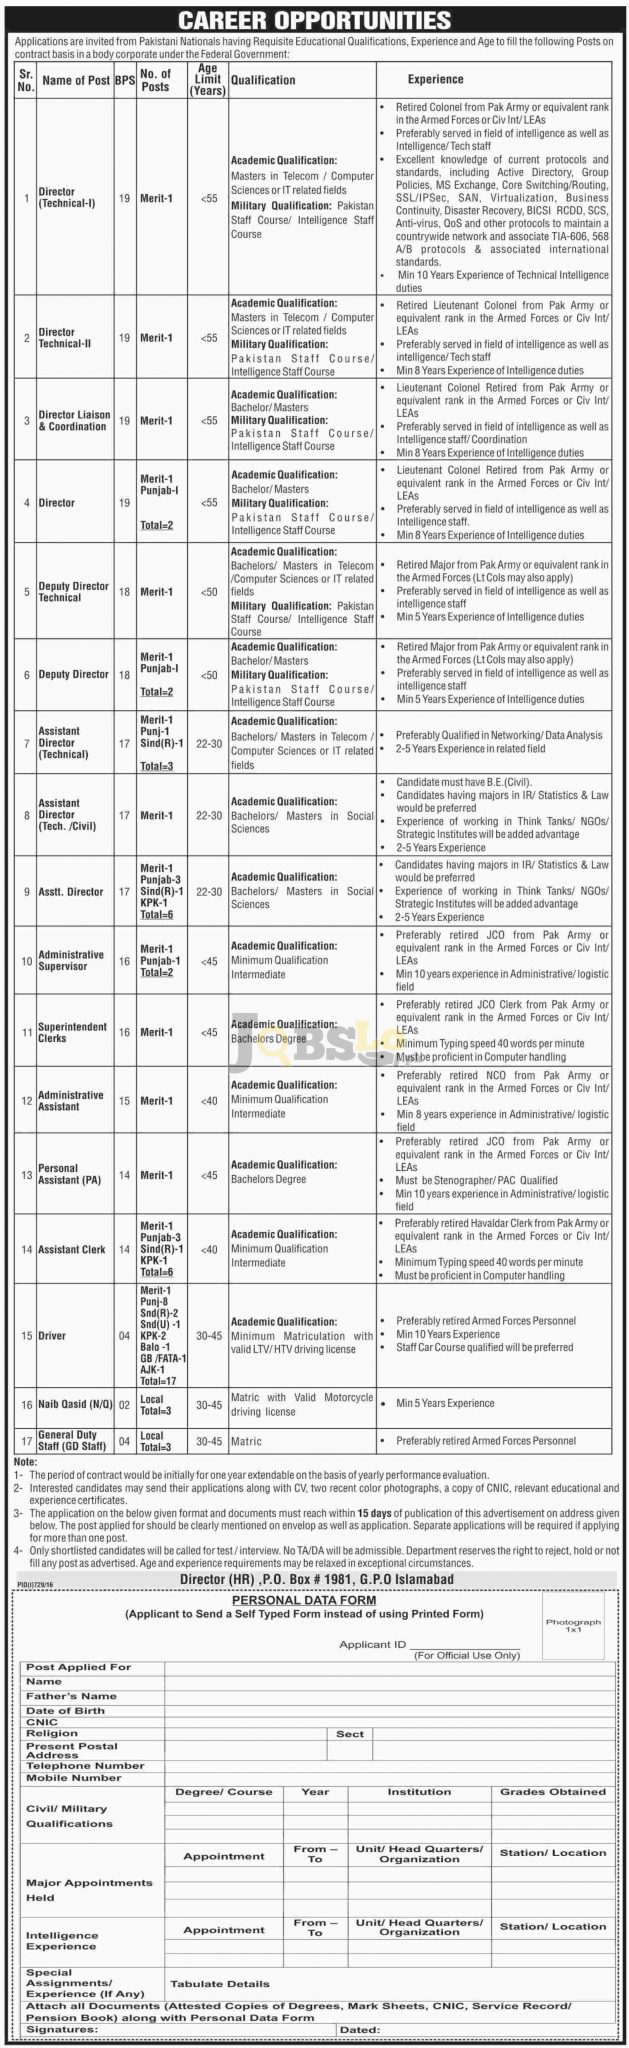 PO Box 1981 Jobs 2016 Application Form Download Federal Government of Pakistan